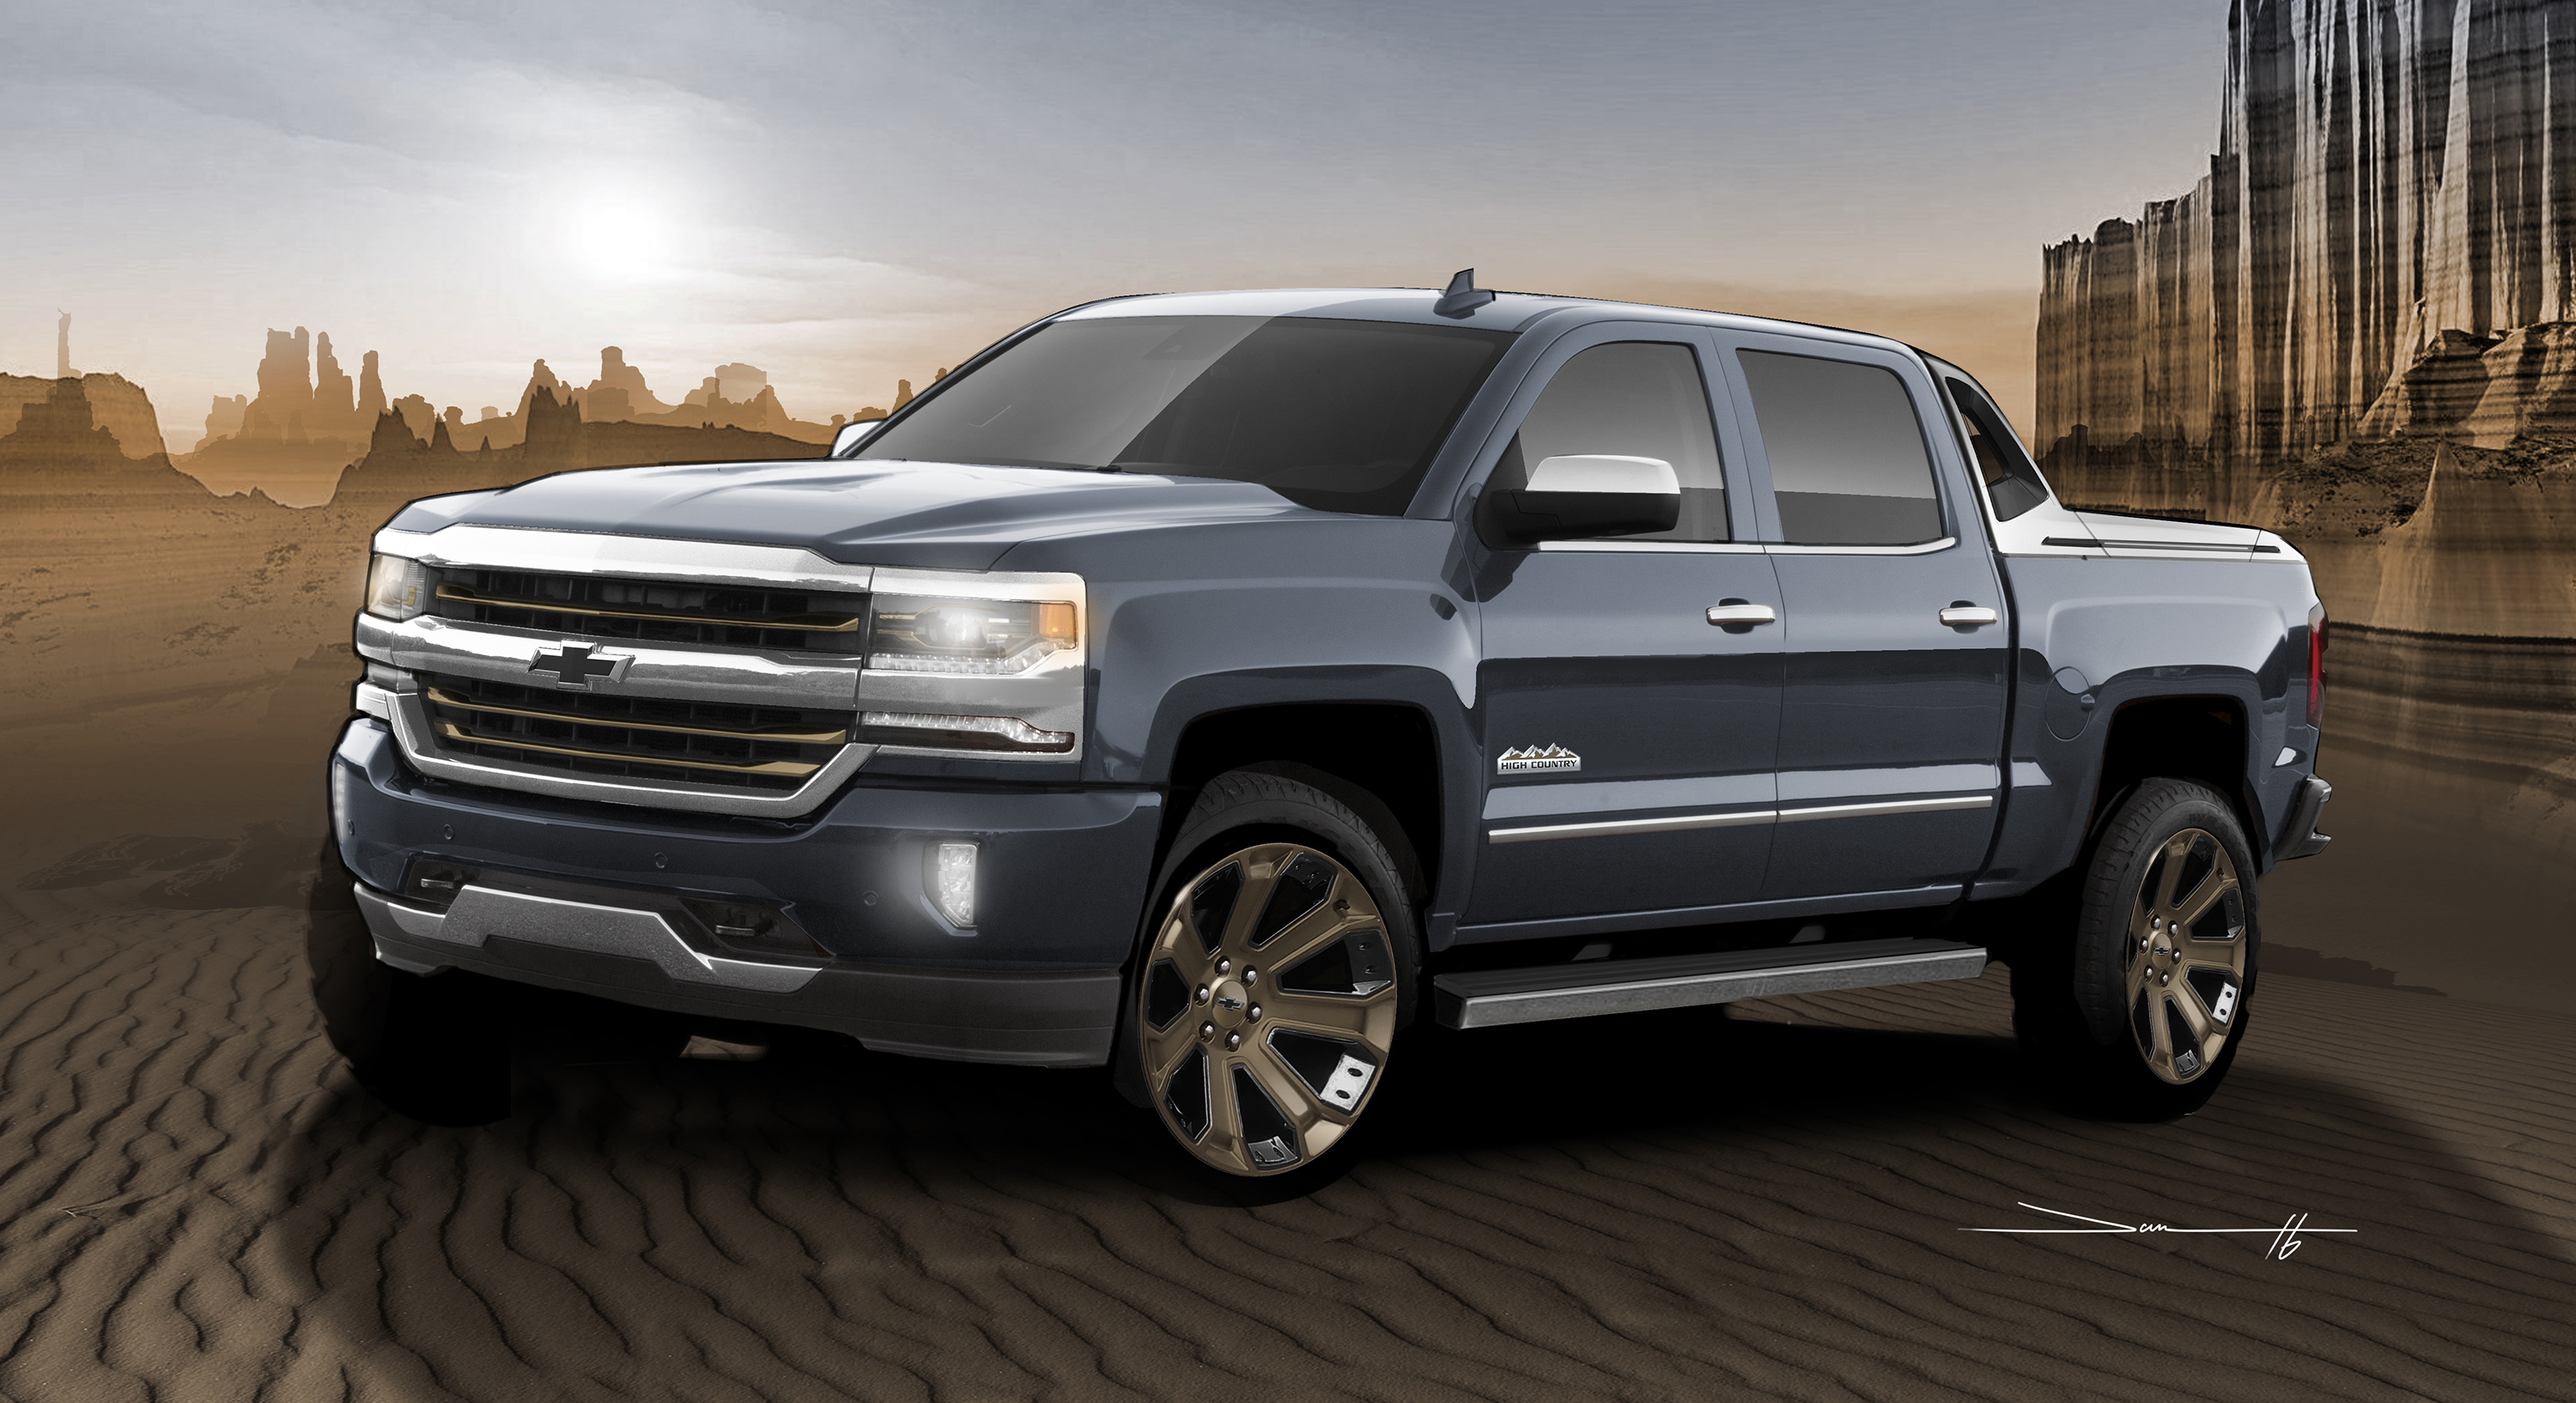 for based reaper into sale chevrolet silverado digging raptor deeper fighter news the lingenfelter